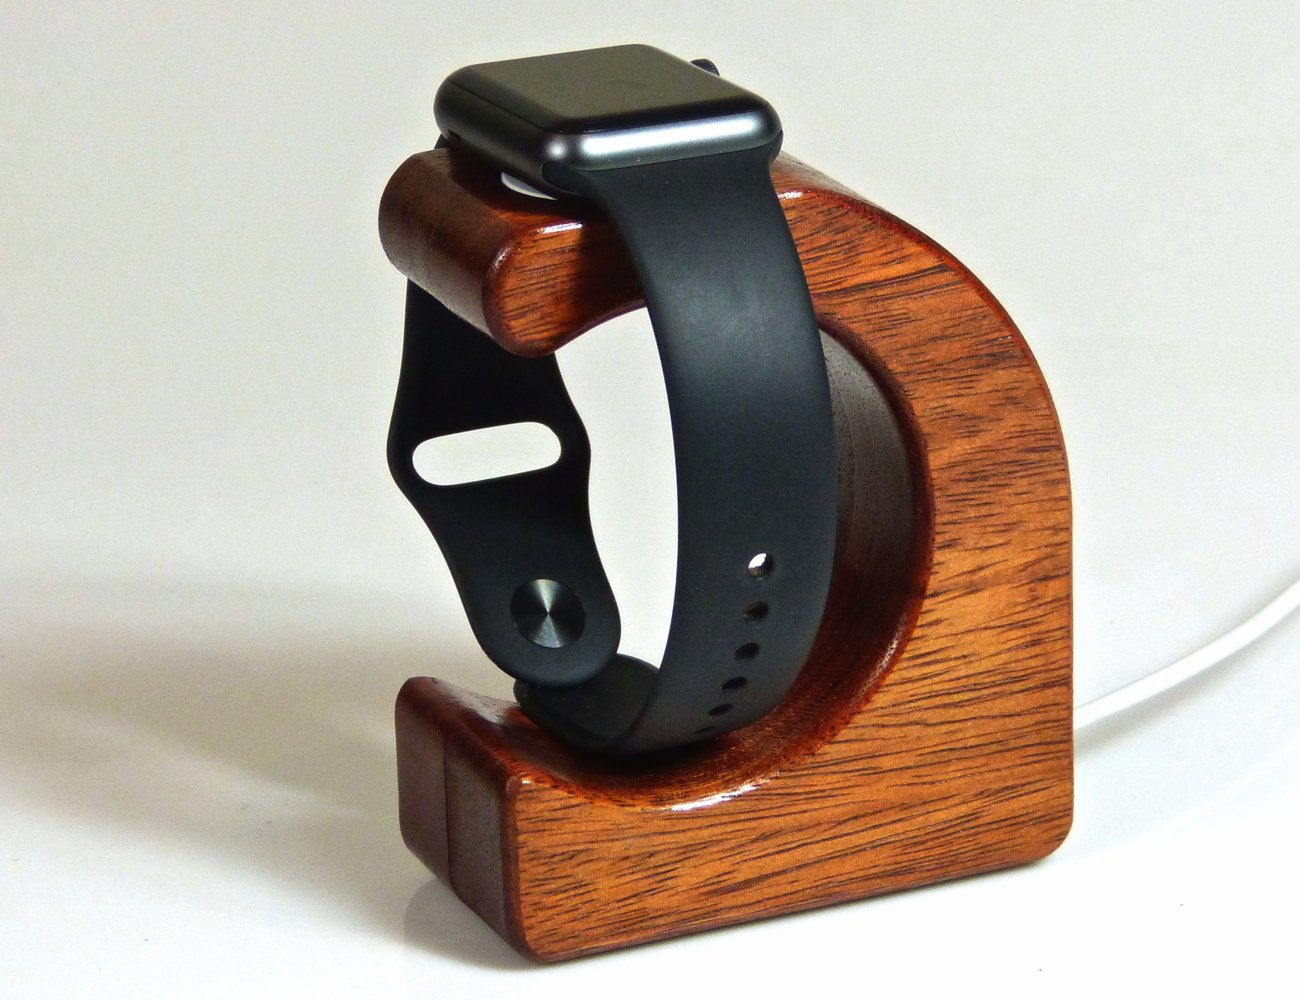 The+WAVE+Apple+Watch+Charging+Stand